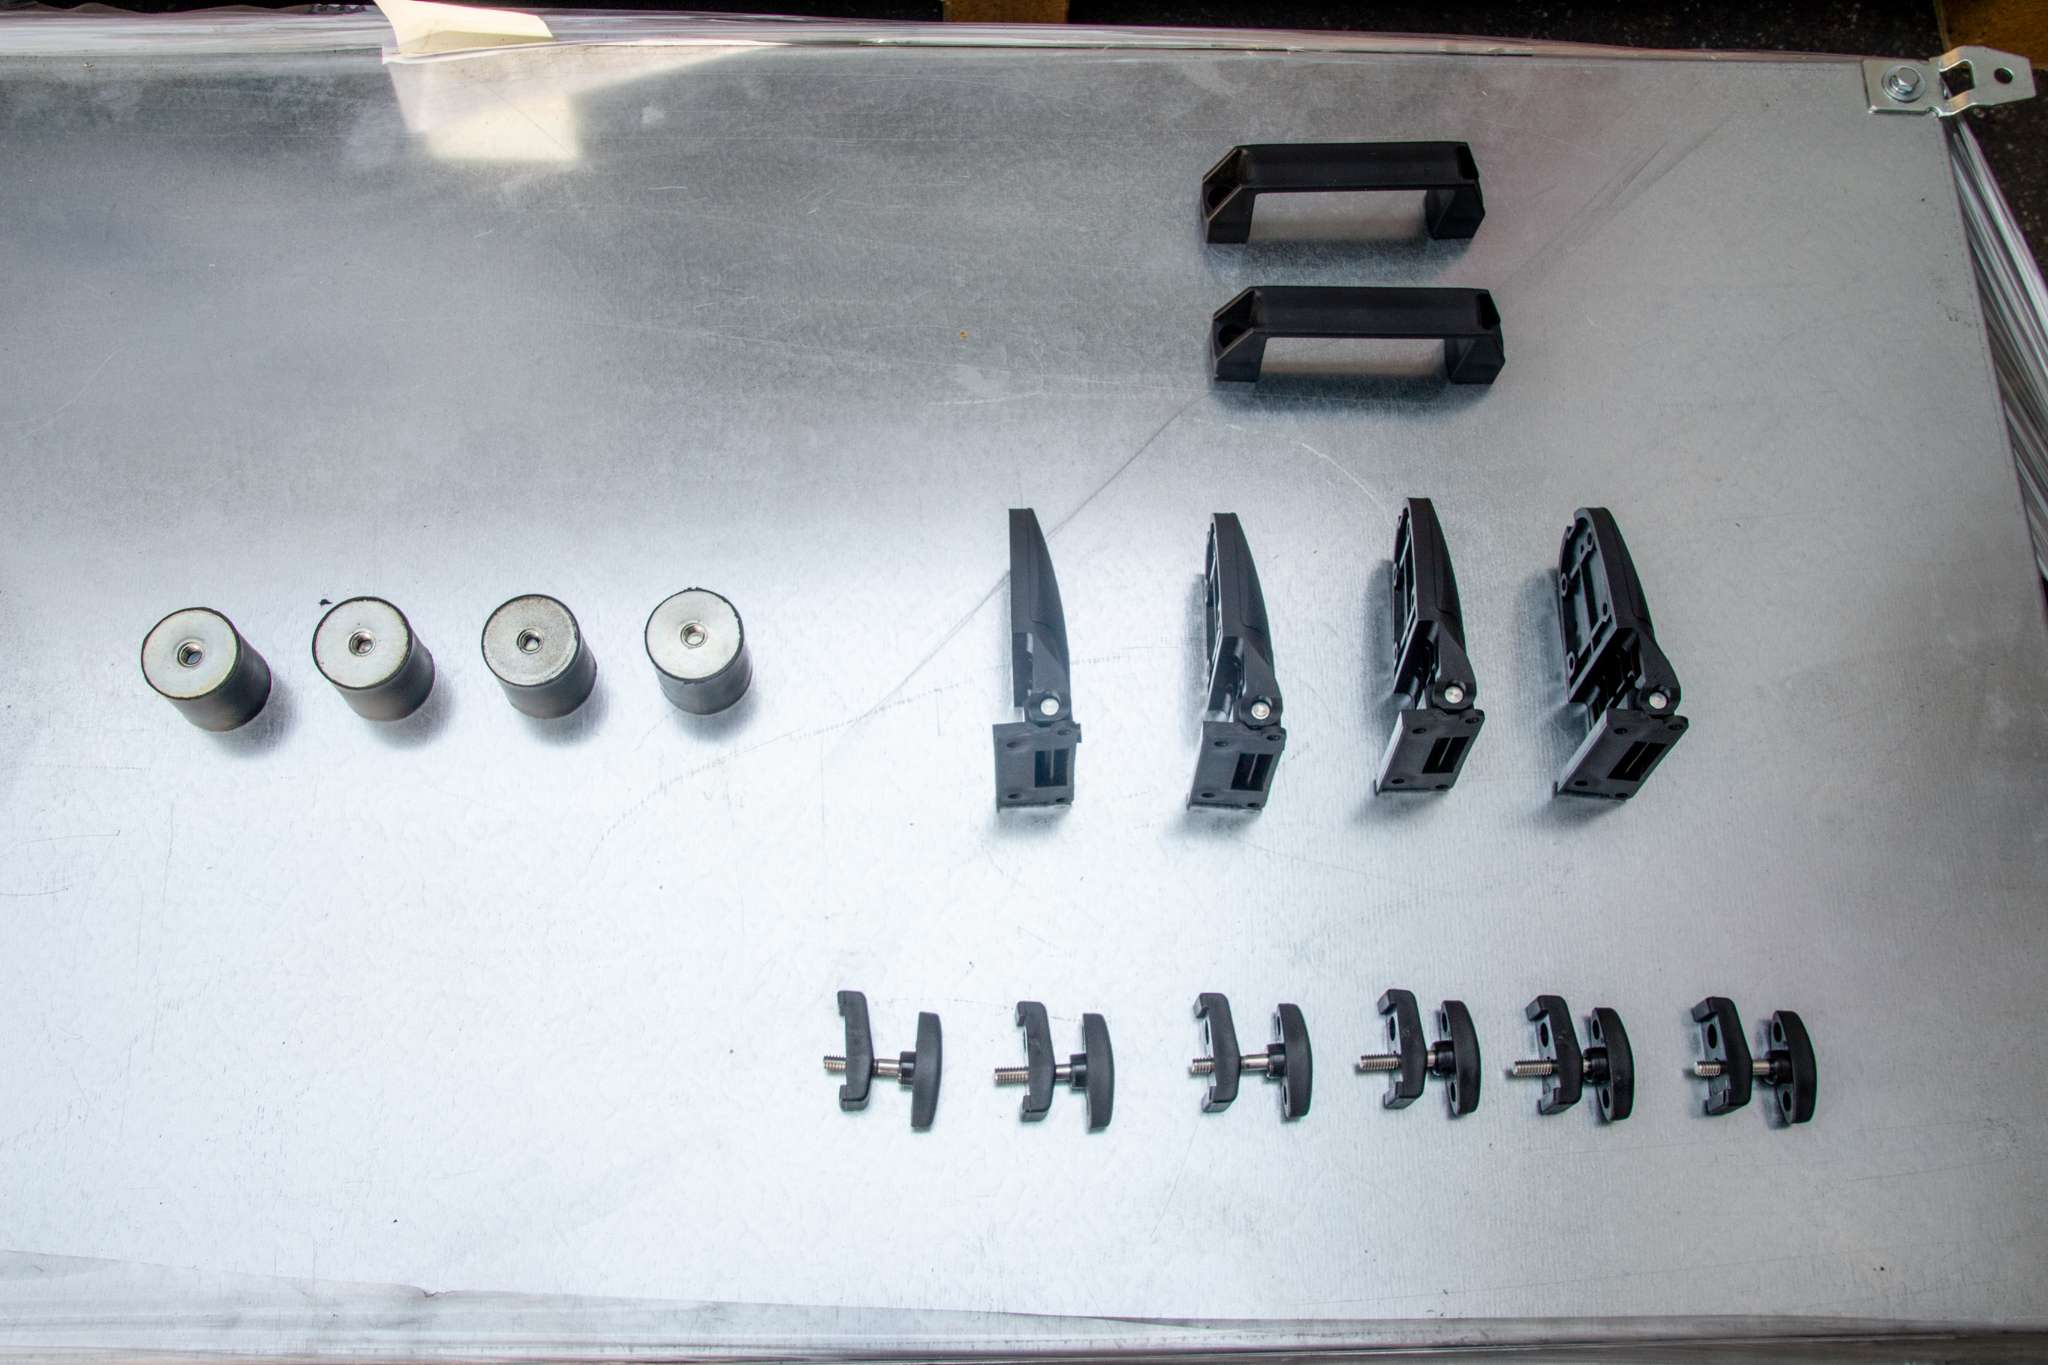 DGX Steady hinges and handles